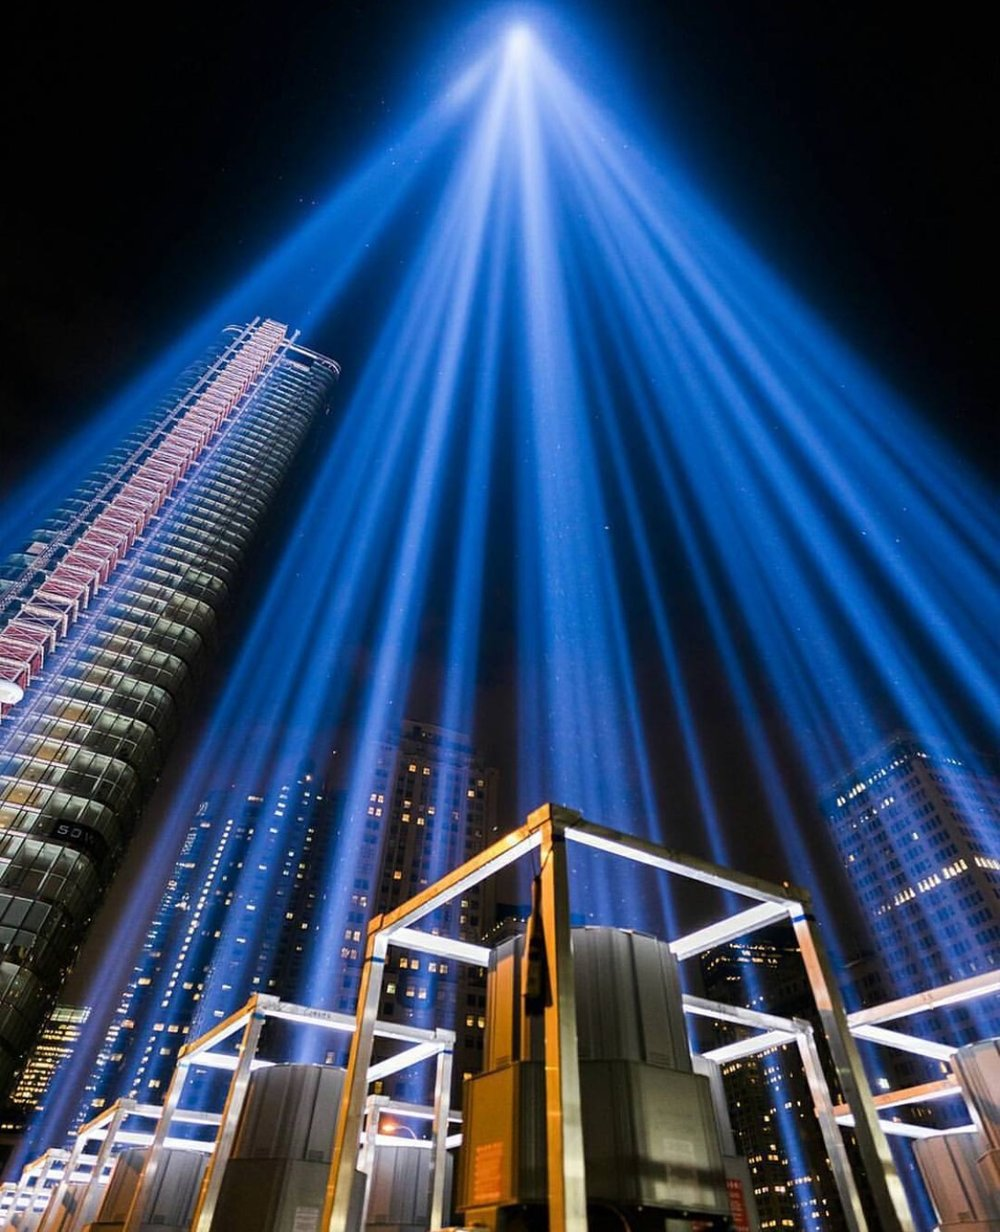 Click here to explore more photos and learn more about Tribute in Light